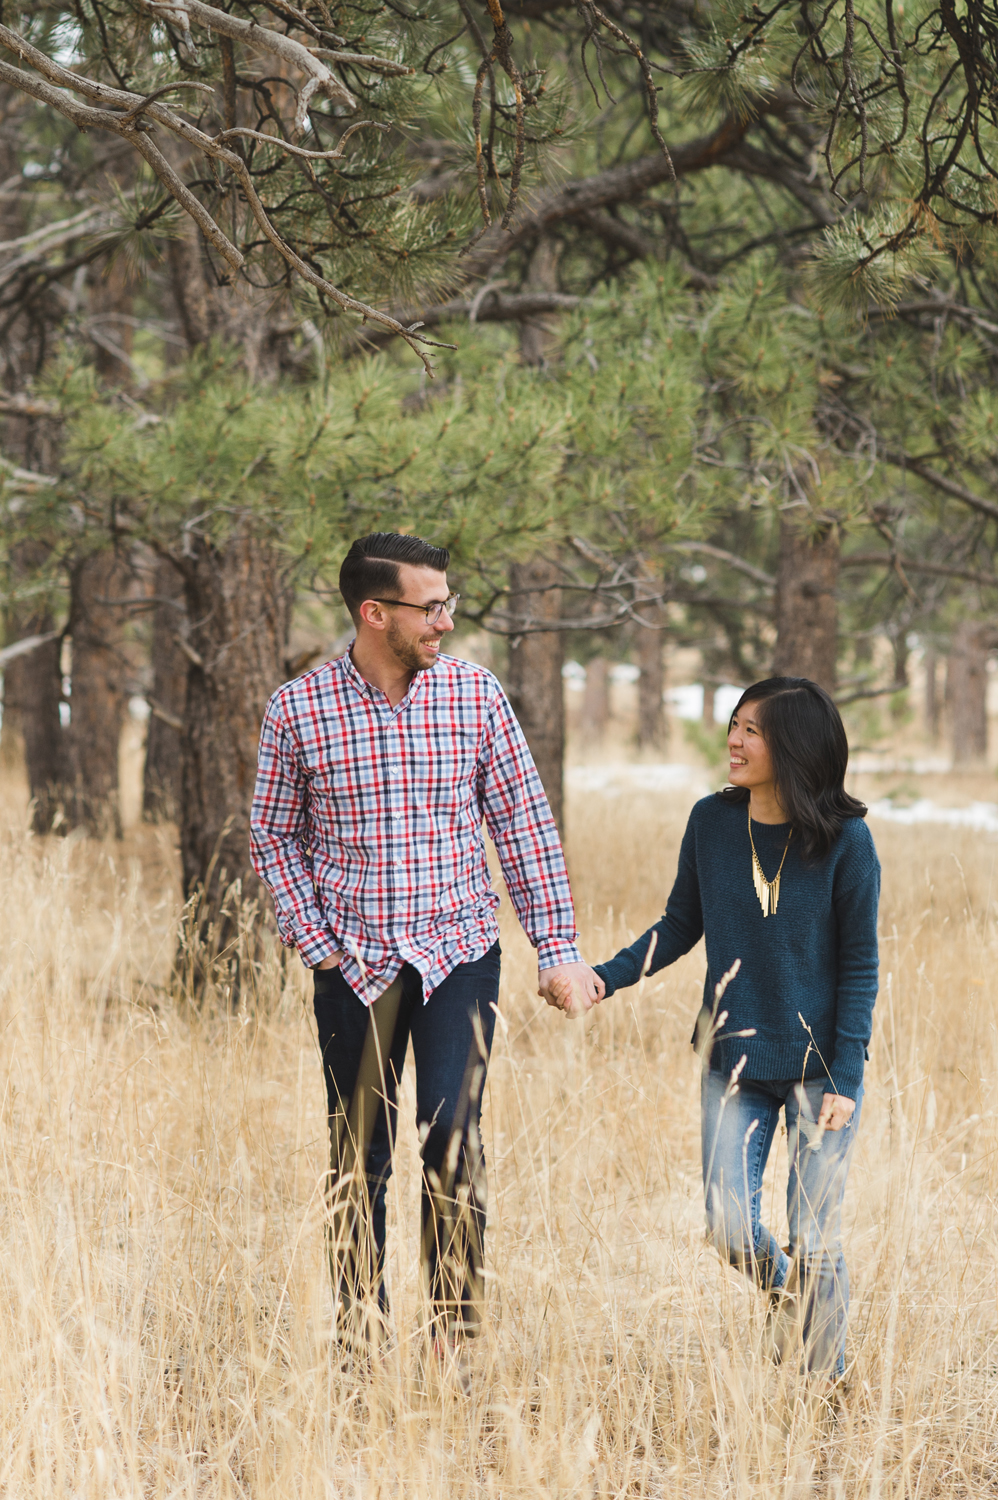 TiffanyandMark_Engaged_0184_squarespace.jpg